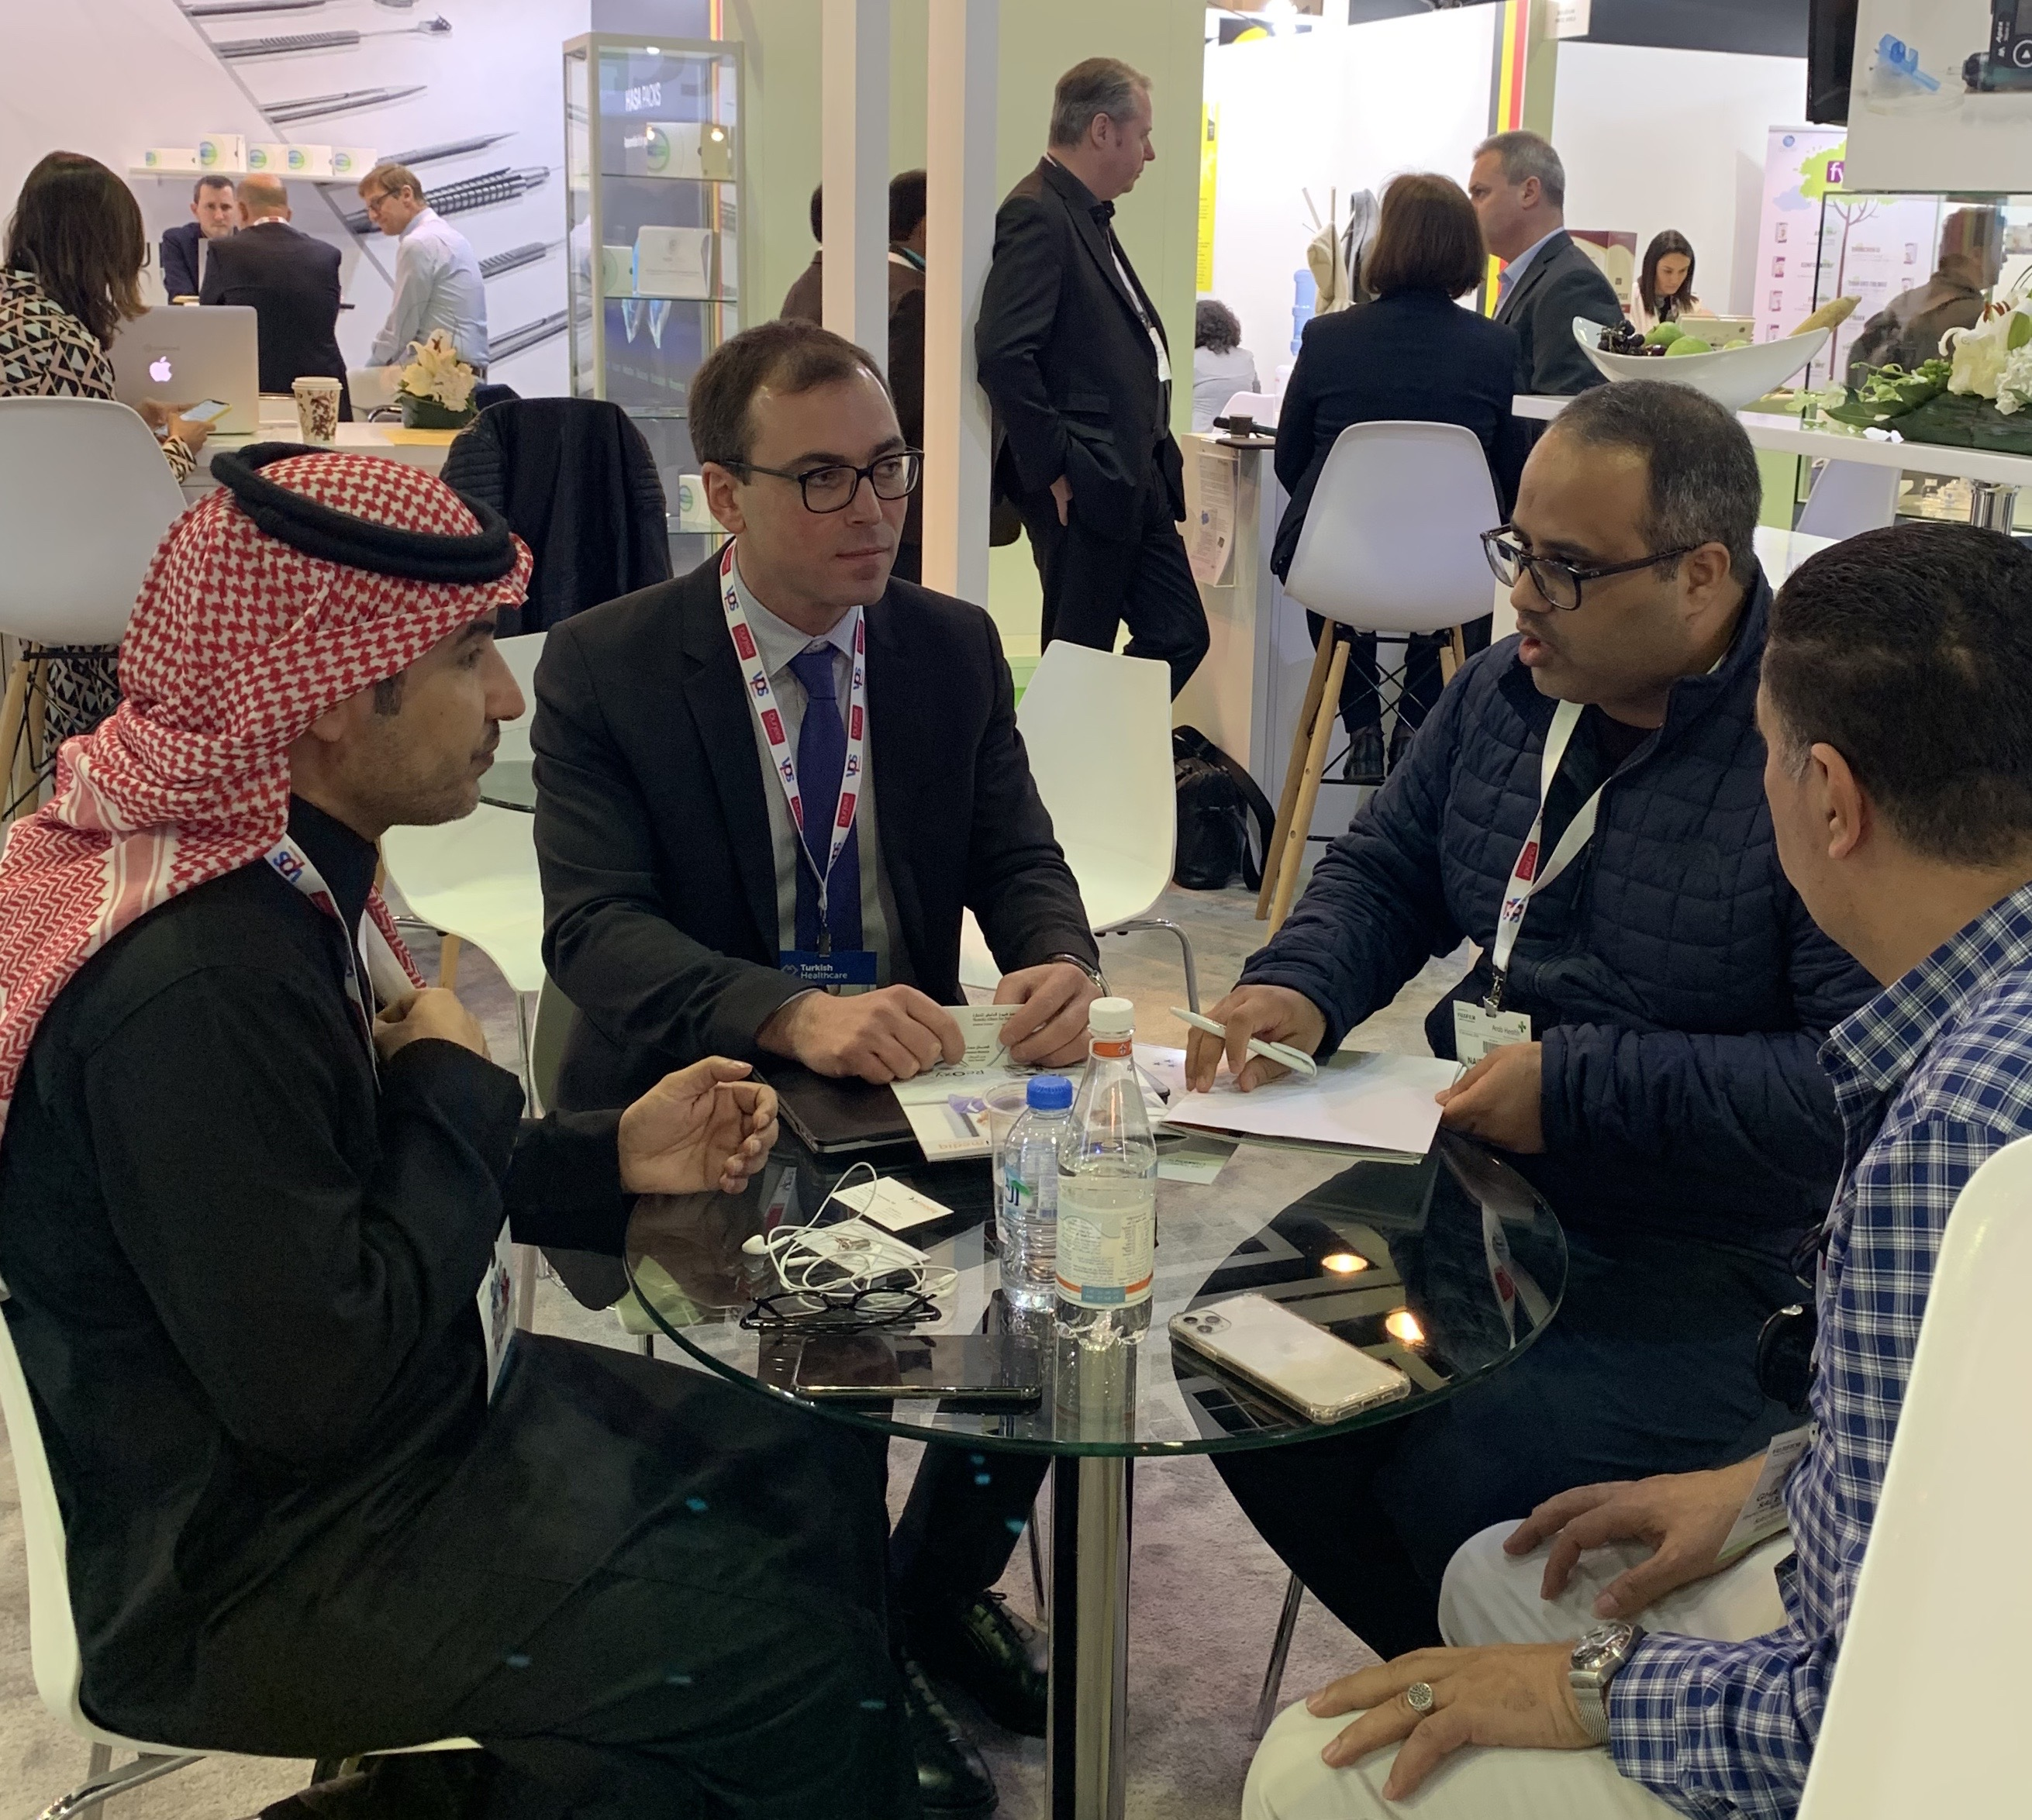 Arab Health 2020 is over